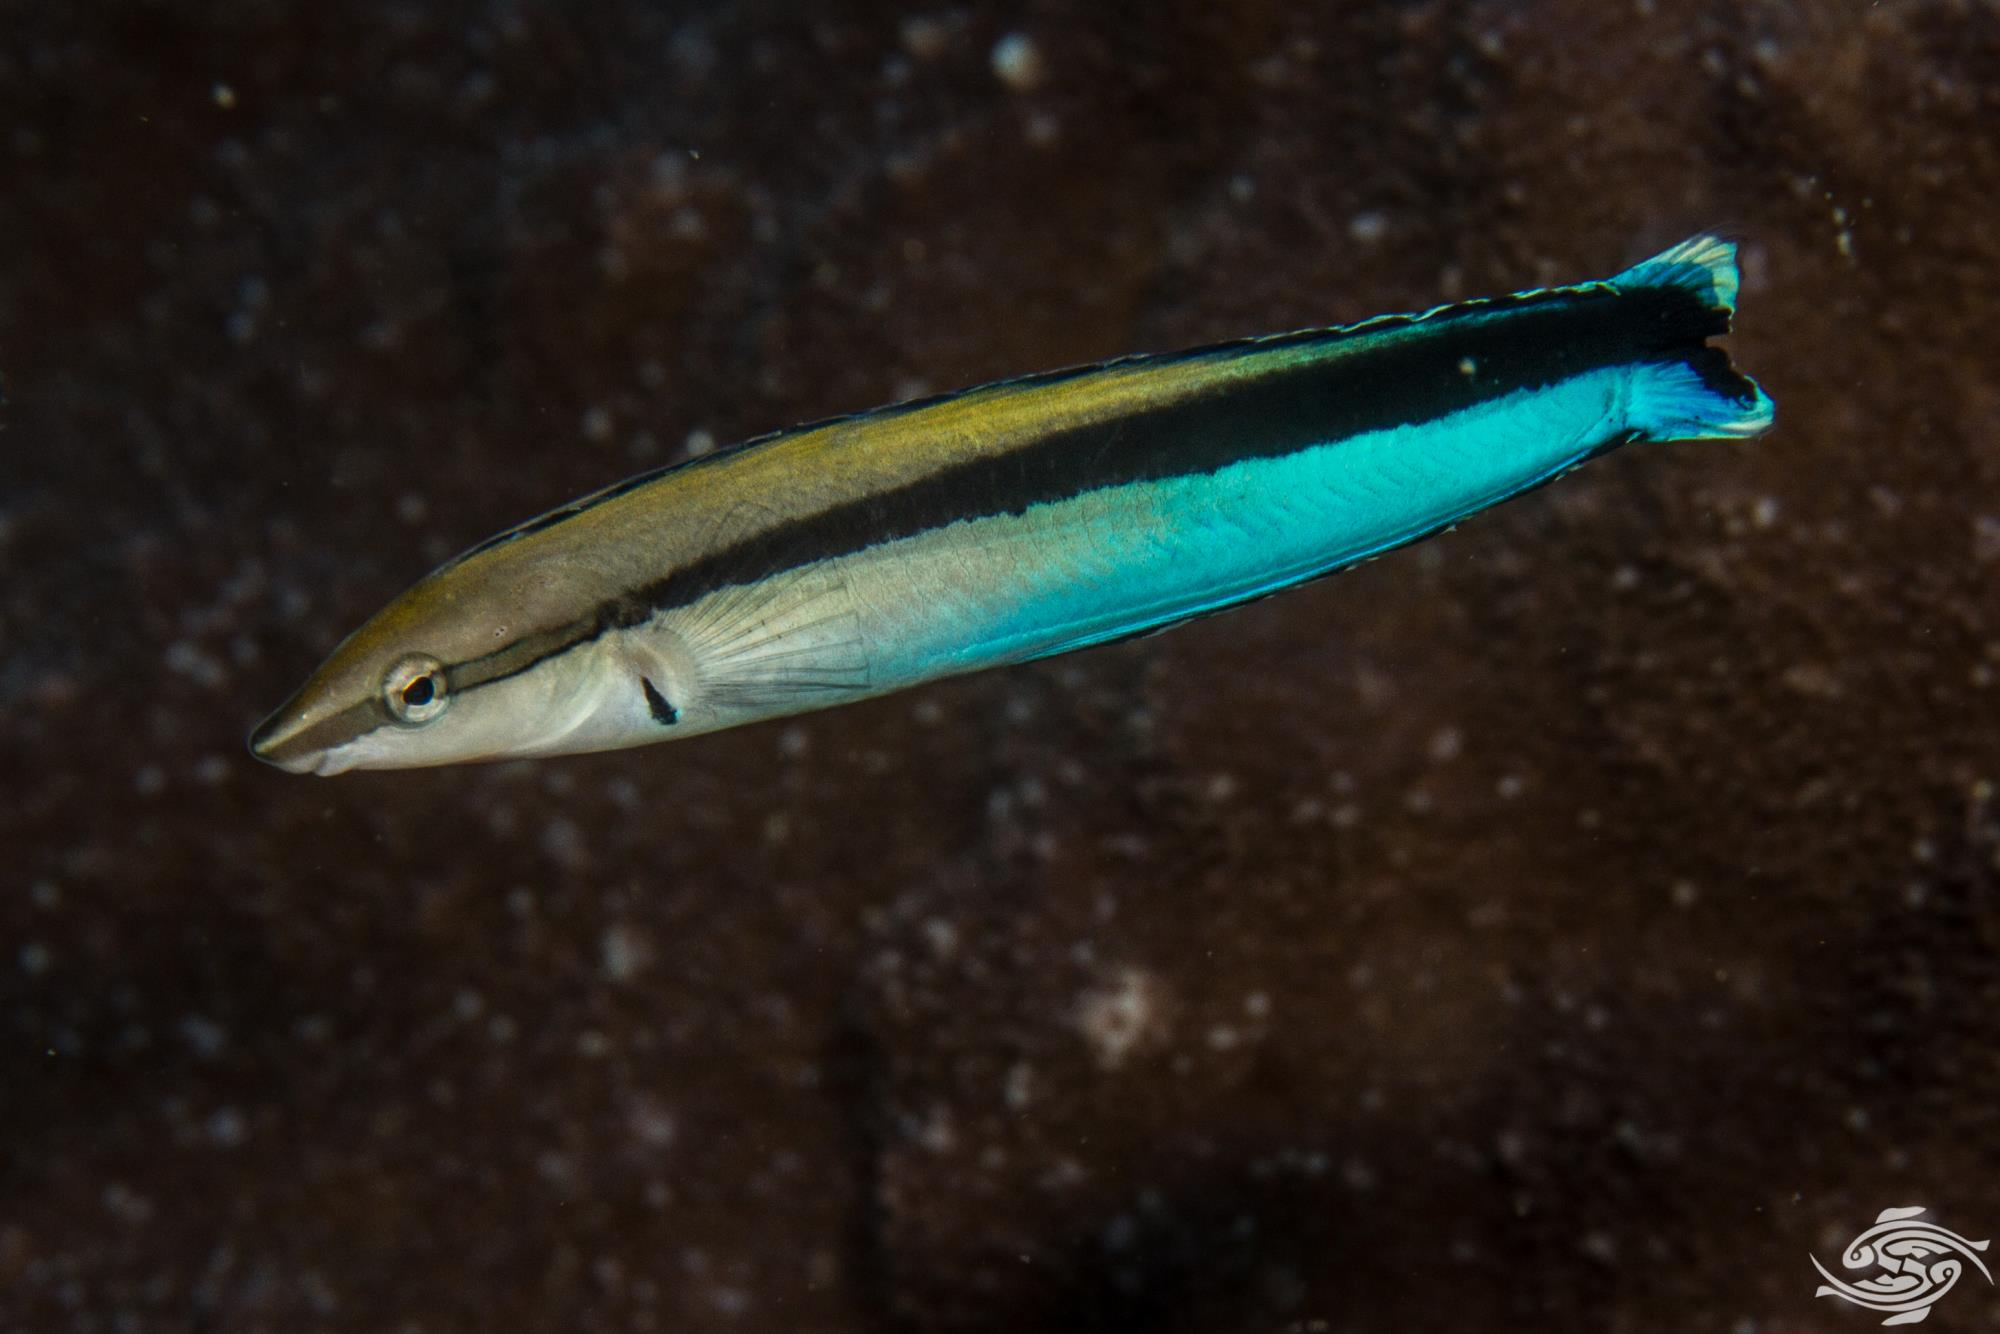 Cleaner Wrasse (Labroides dimidiatus) mimicked by a False cleanerfish (Aspidontus taeniatus)